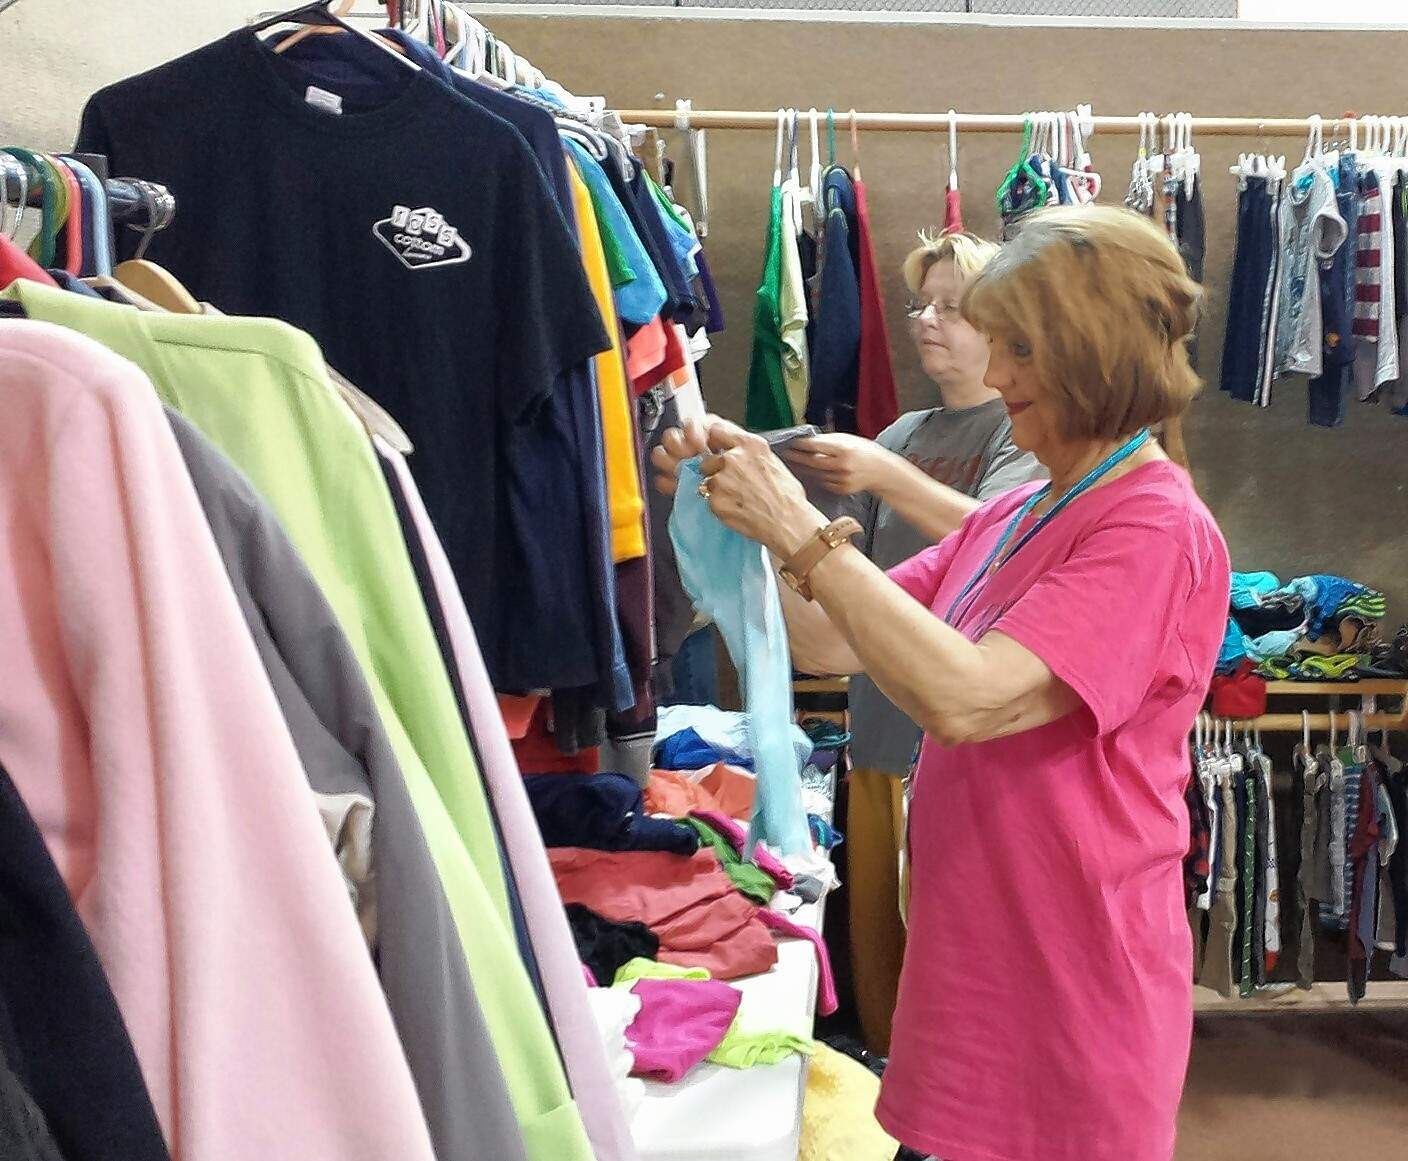 Volunteers Linda Teegarden, foreground, and Sheila Mann sort clothing to put on hangers Tuesday morning prior to the opening.